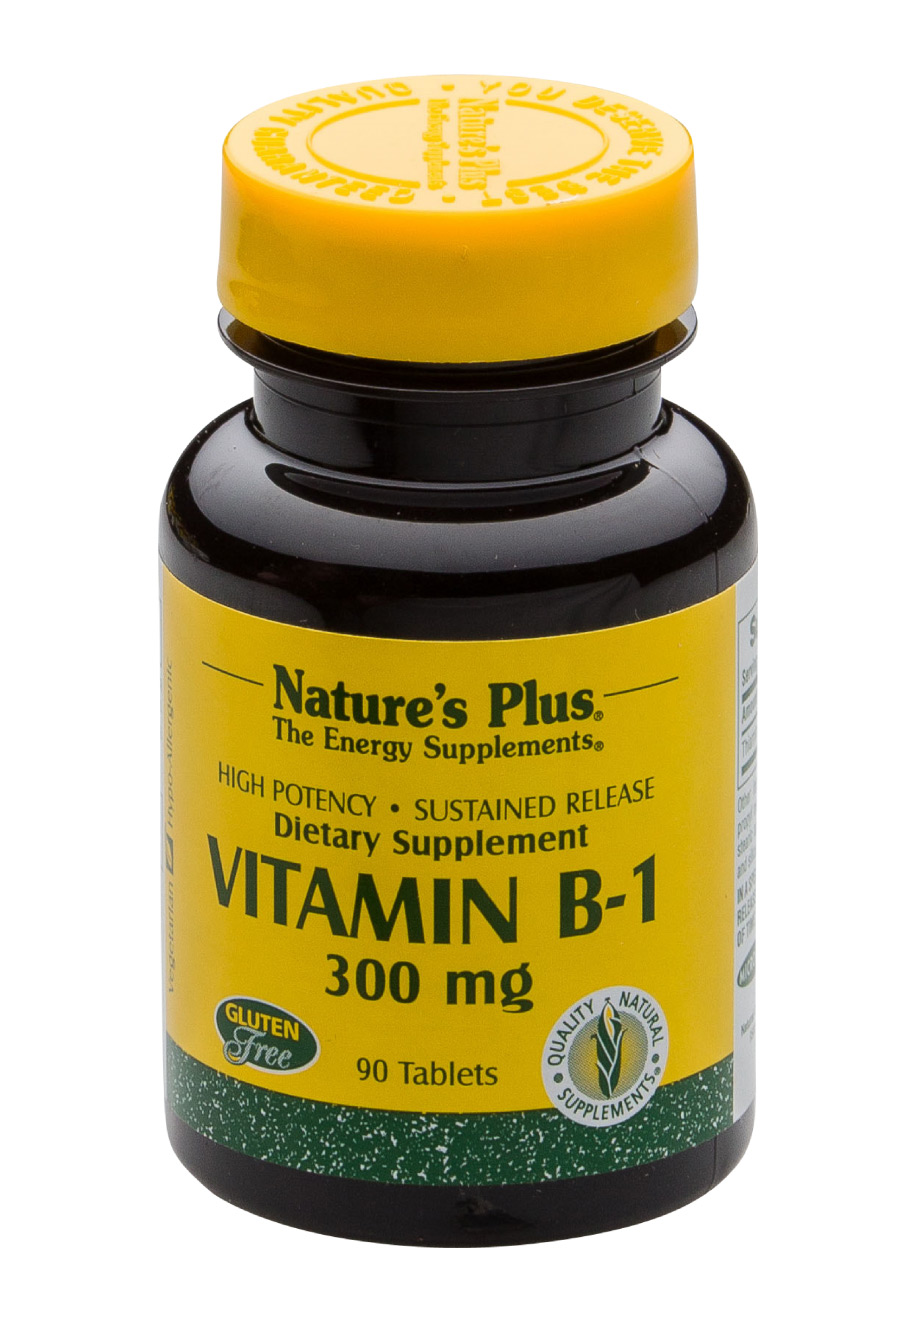 Nature's Plus Vitamin B-1 (Thiamin) 300mg 90 Tabletten S/R (46,7g)